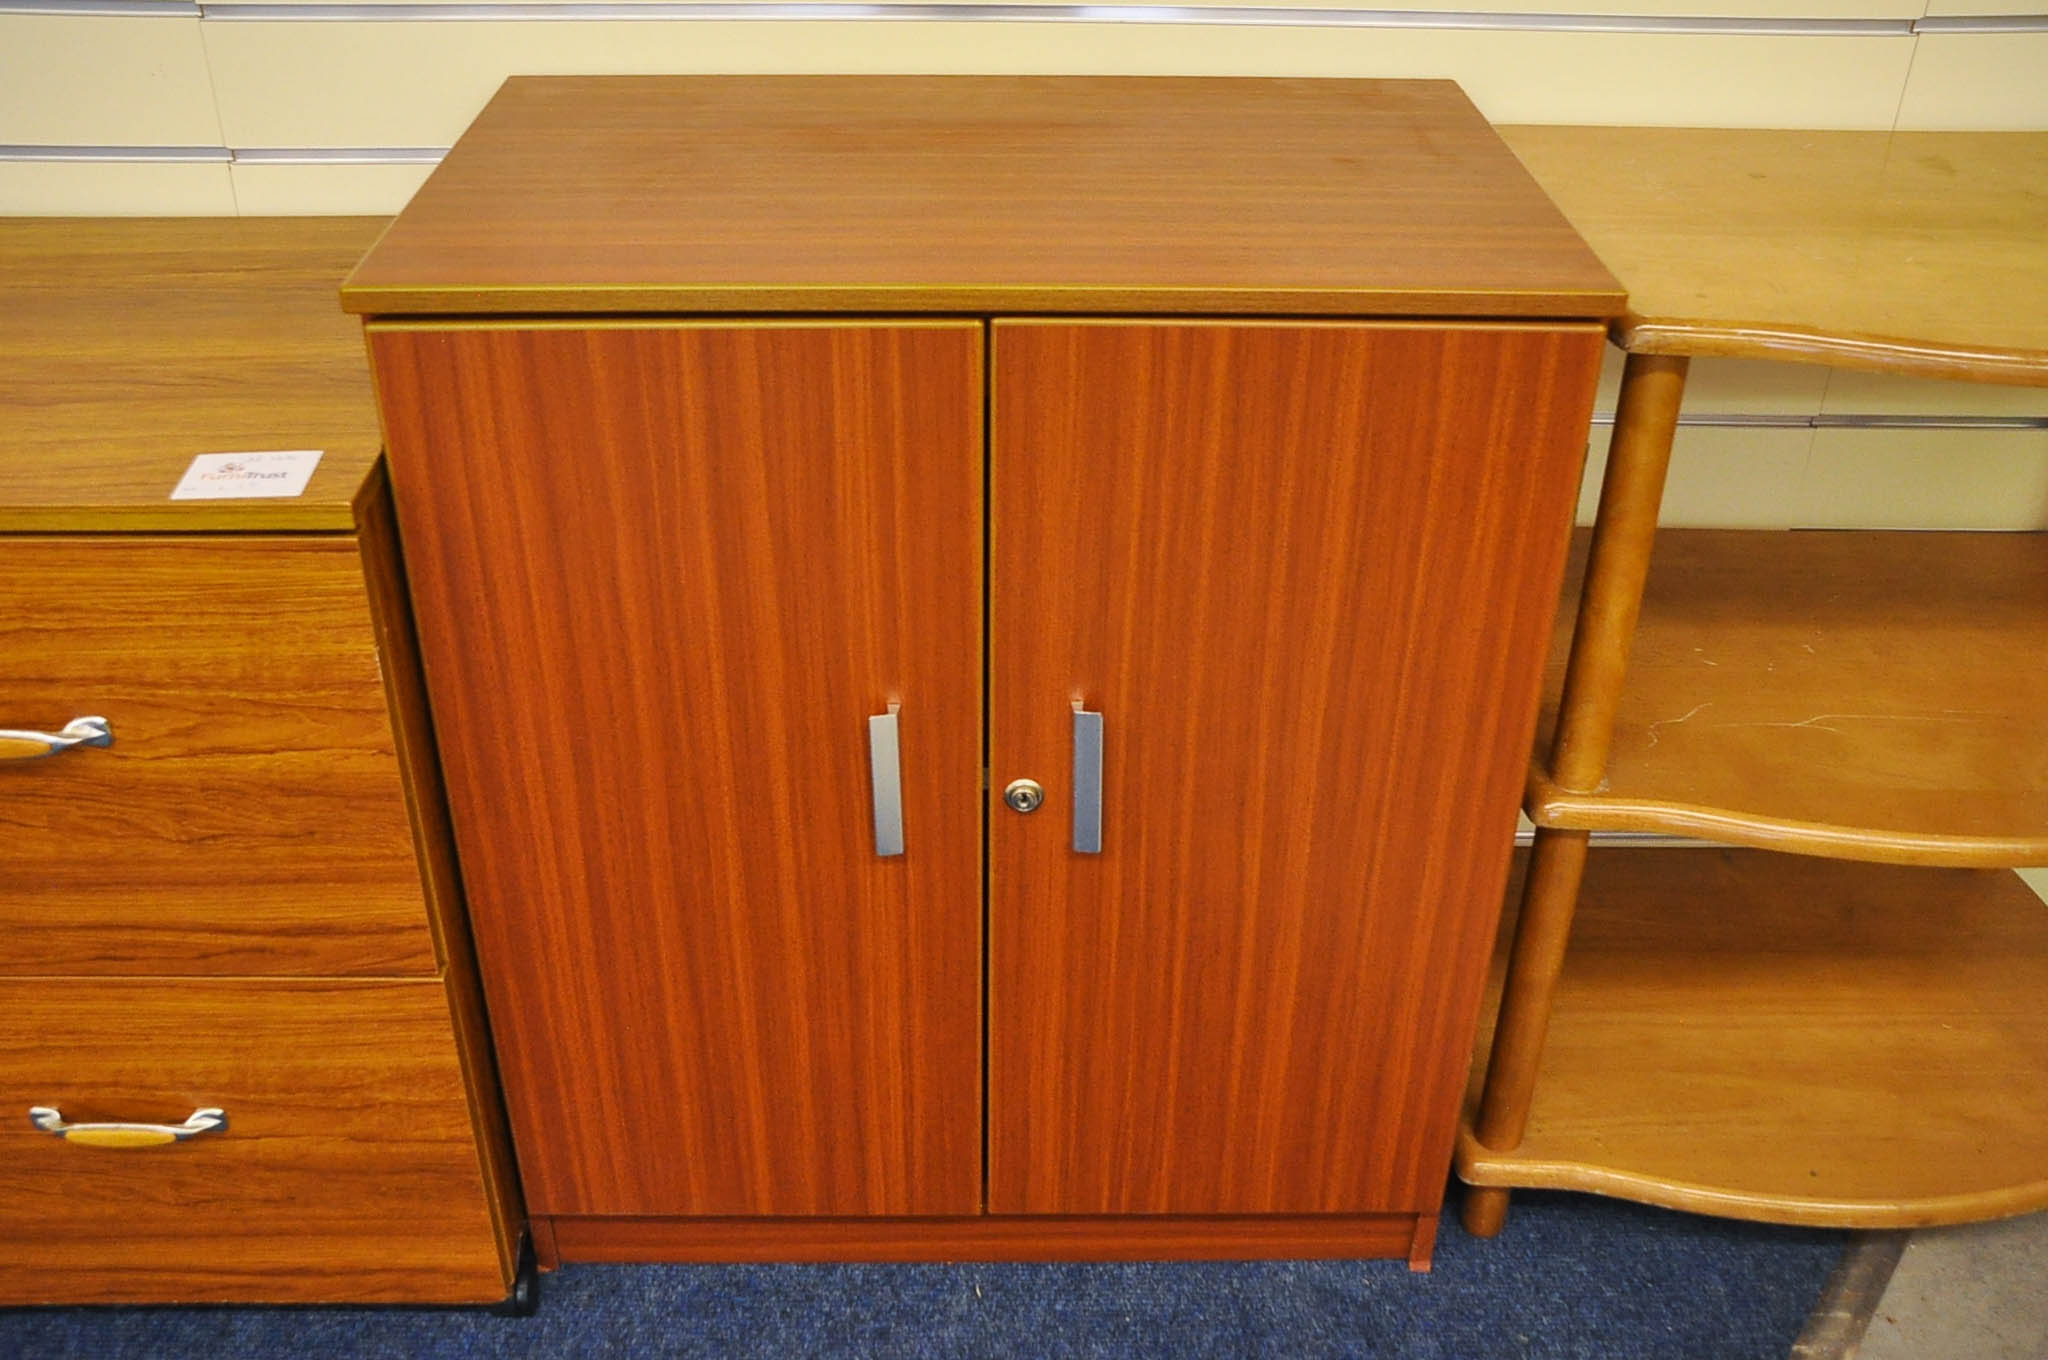 Office style 2 door Cabinet with internal shelf. No key.